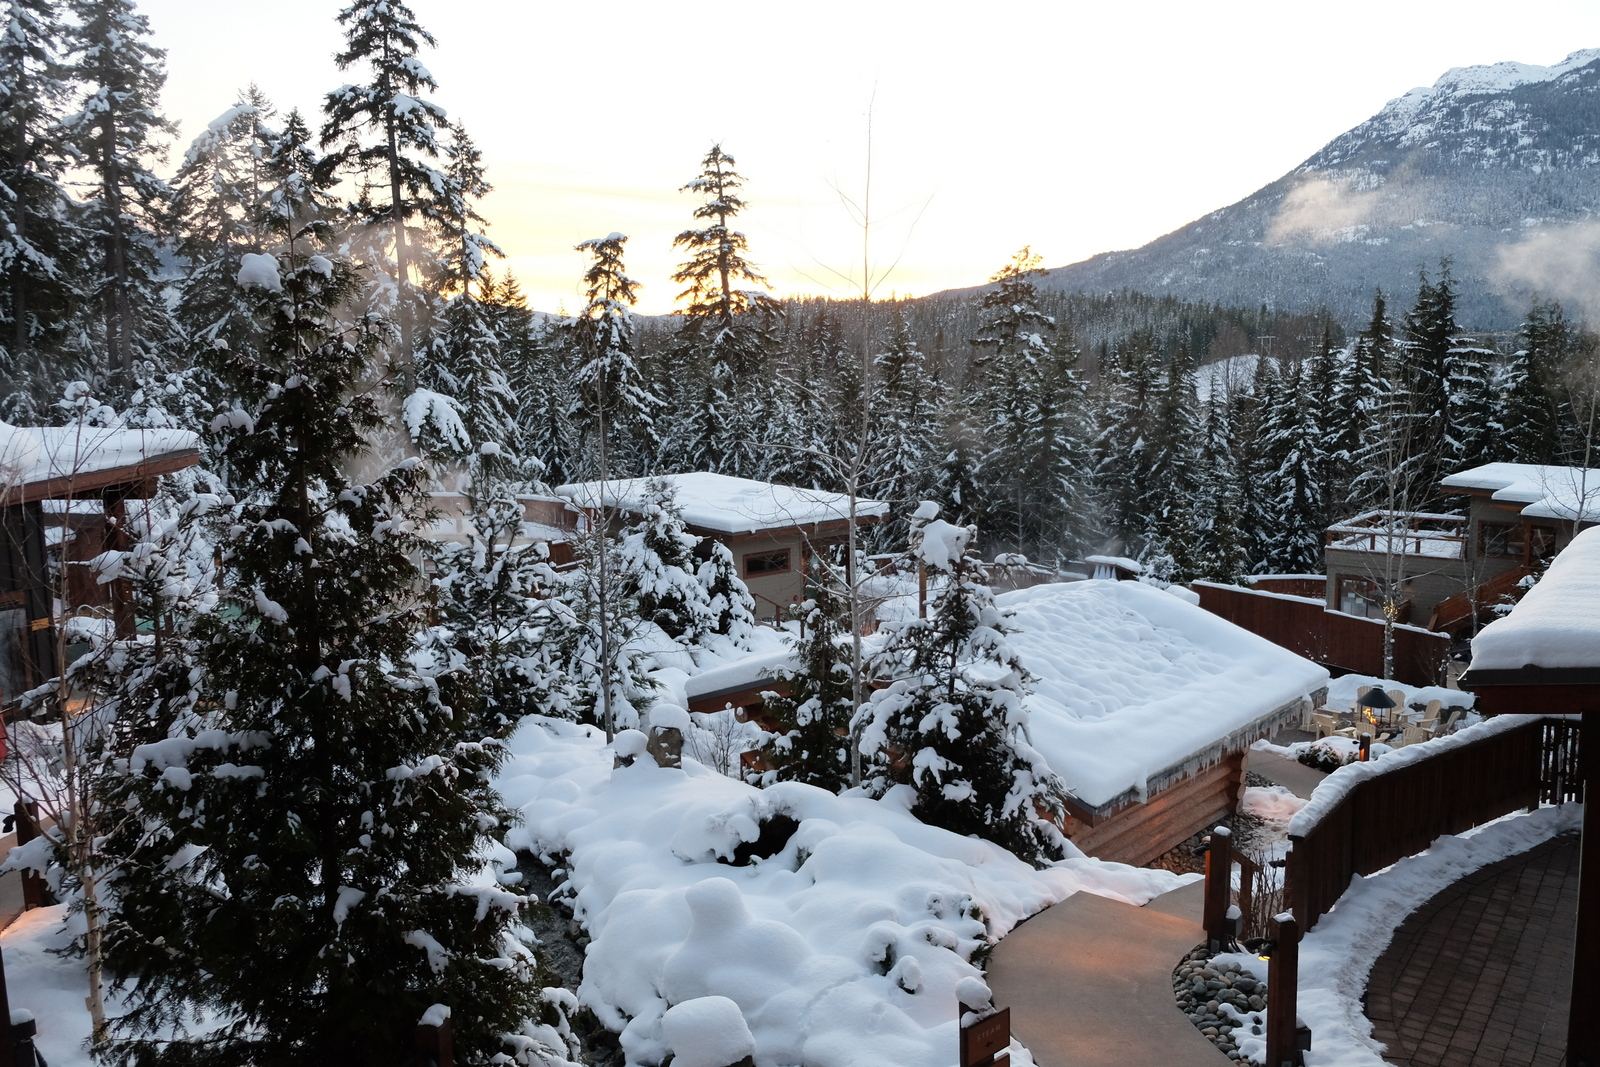 The Scandinave Spa in Whistler is a gorgeous winter spot. - JIM BYERS PHOTO